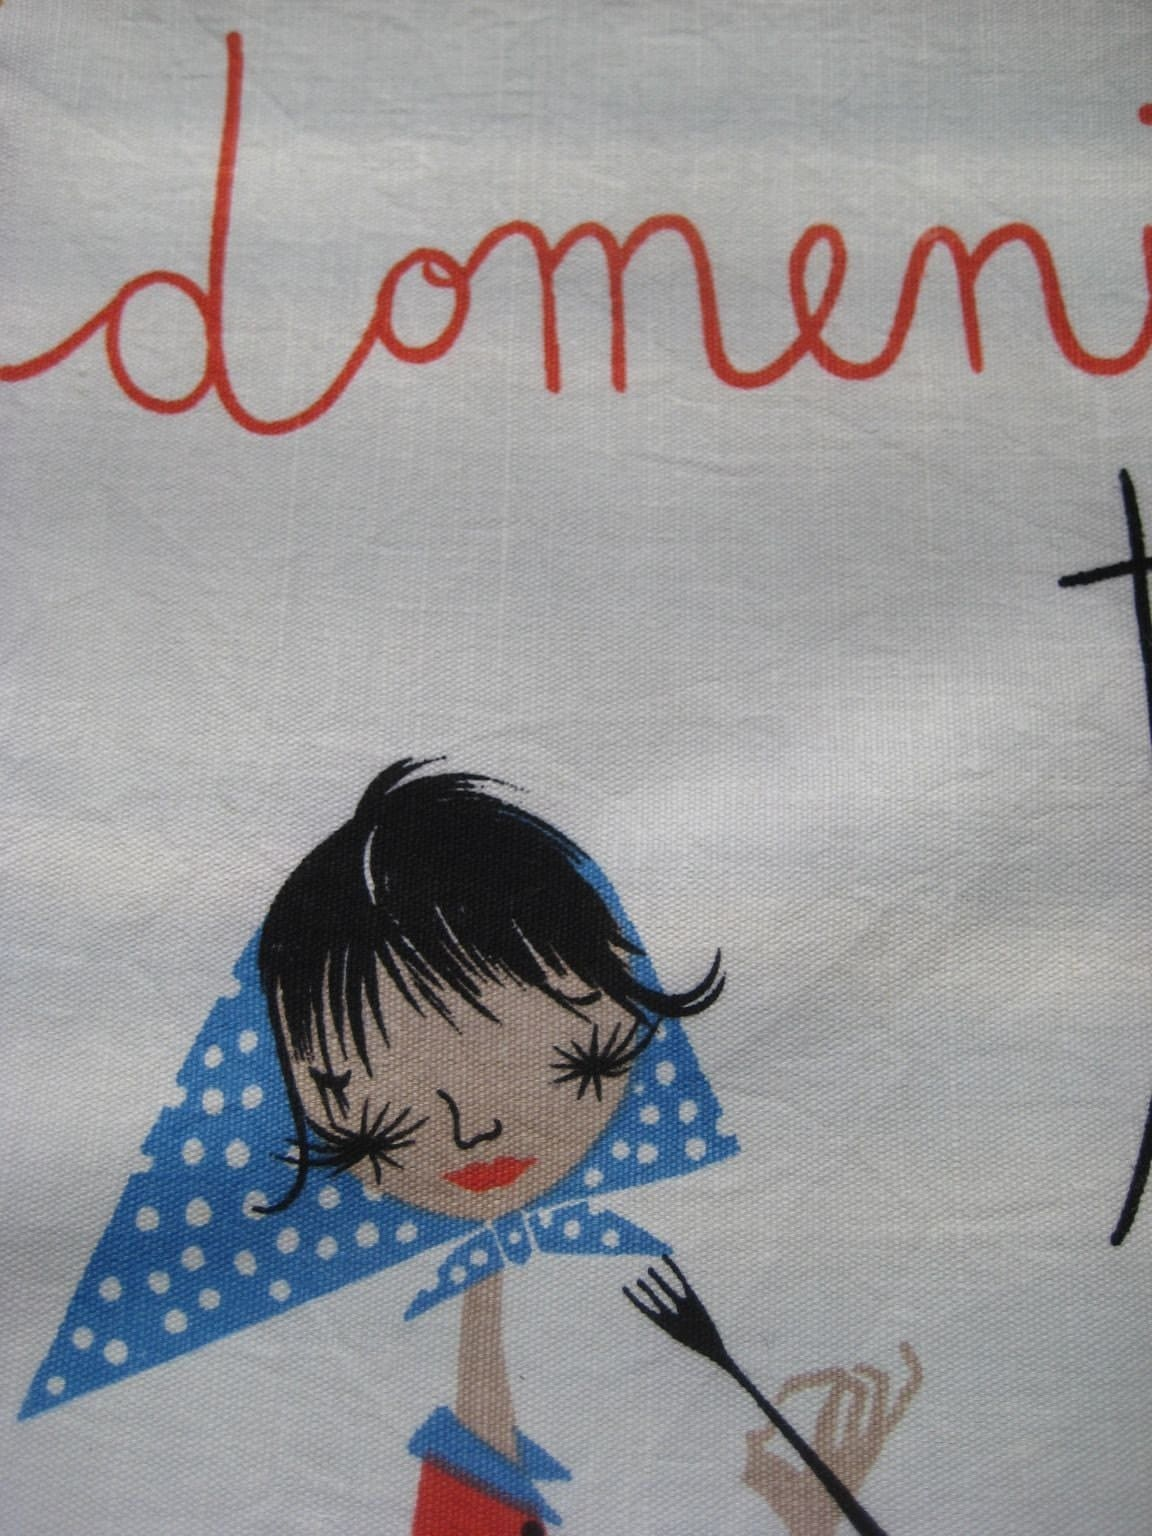 Vintage Day Of The Week Tea Towel With Italian Design By